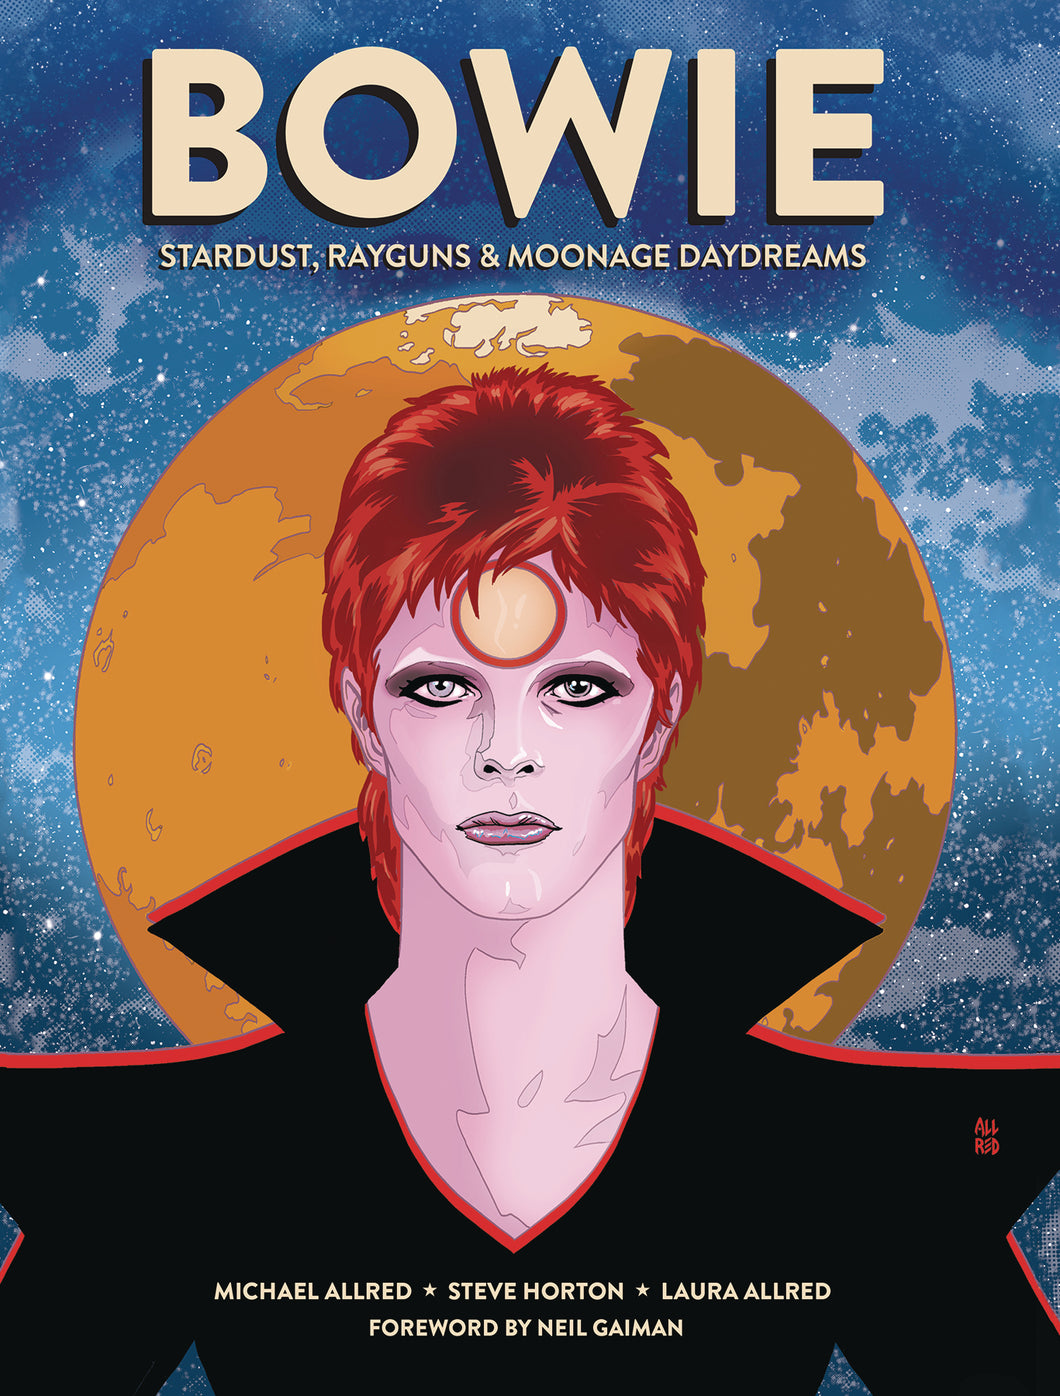 BOWIE STARDUST RAYGUNS & MOONAGE DAYDREAMS HC GN (C: 0-1-0)